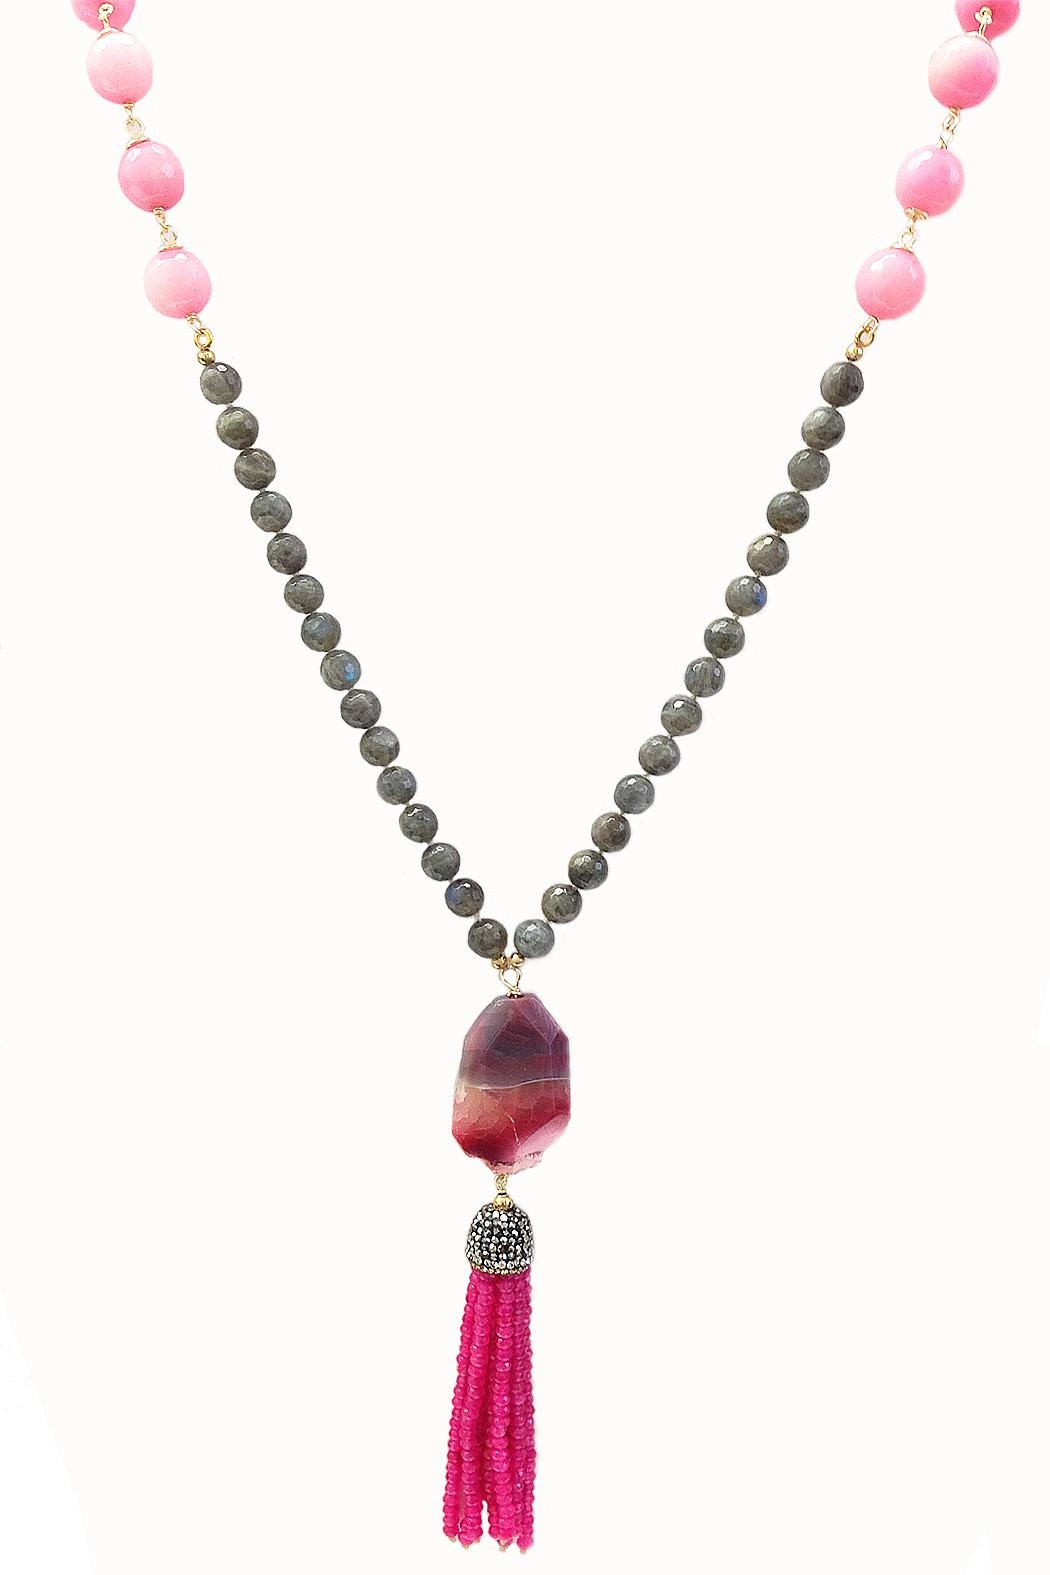 TINK TINK Pink Stone Necklace - Main Image